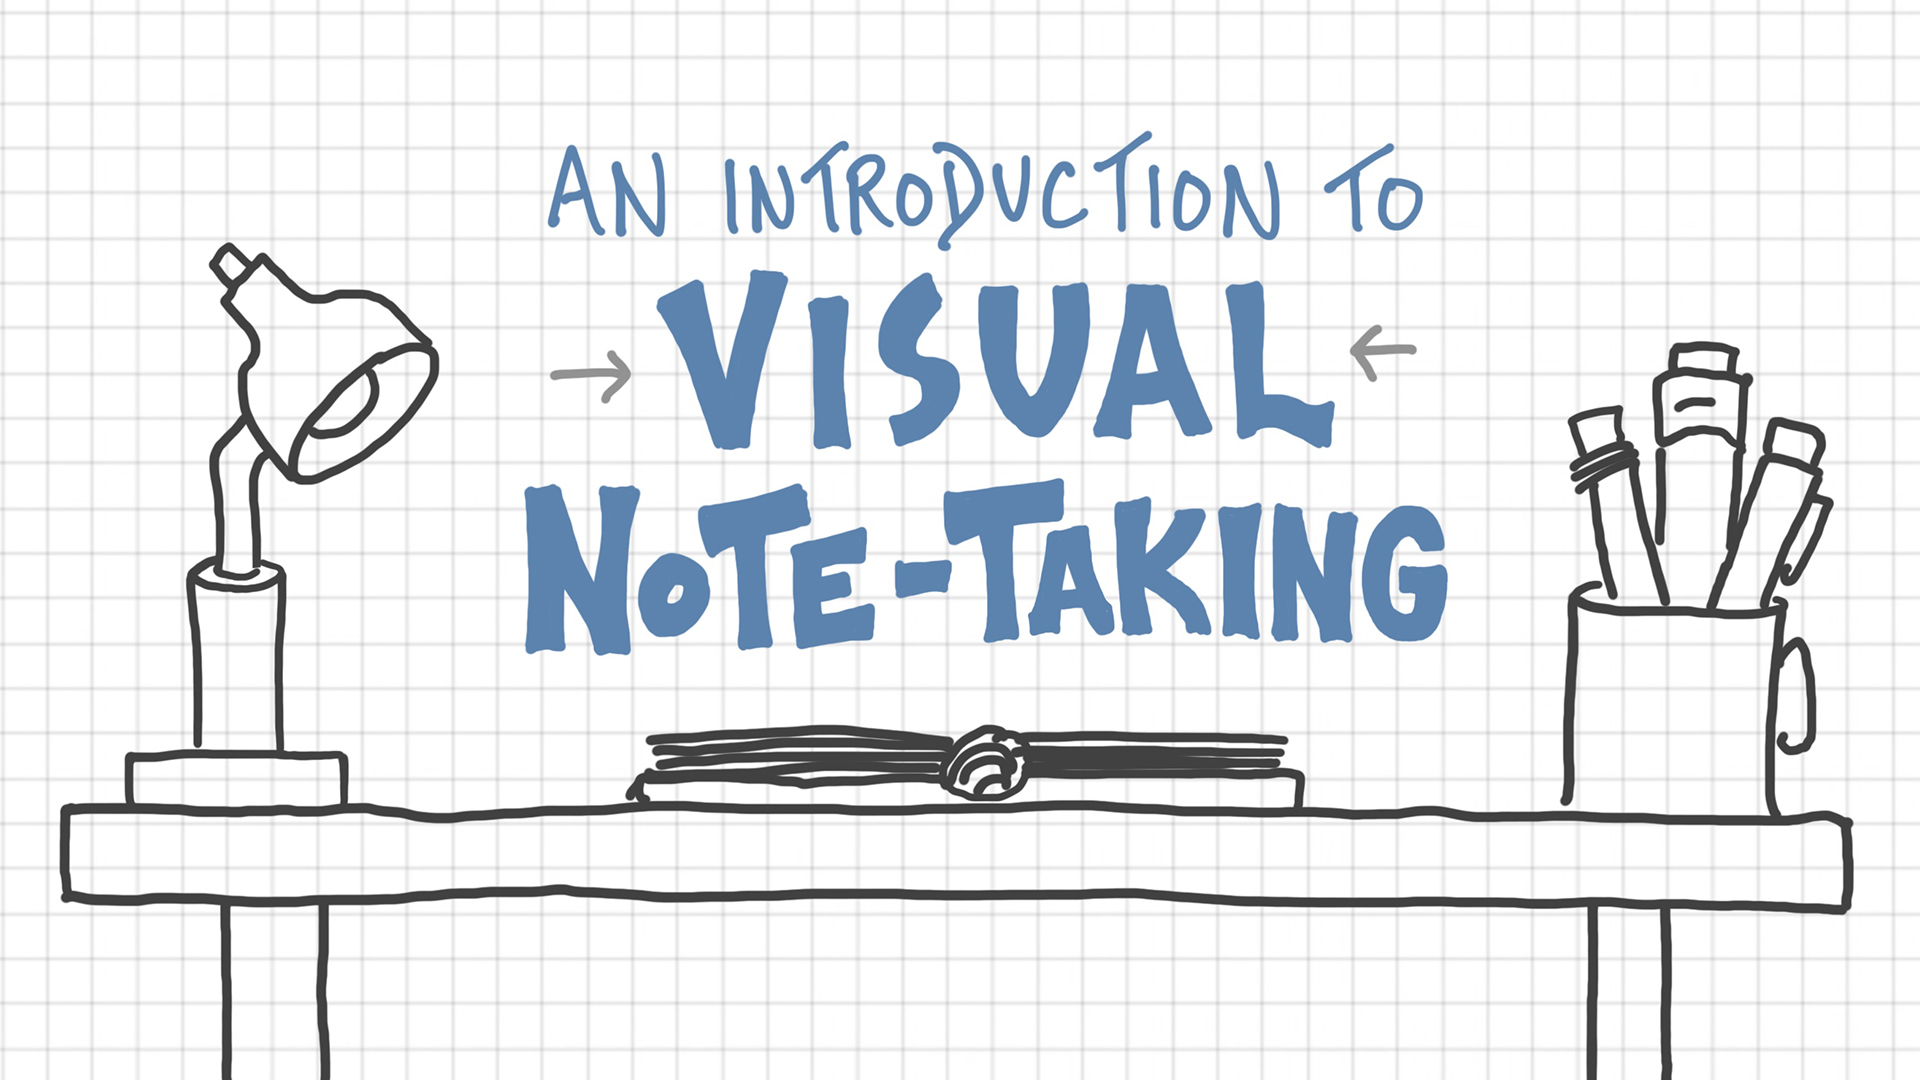 An Introduction To Visual Note-Taking - Verbal To Visual